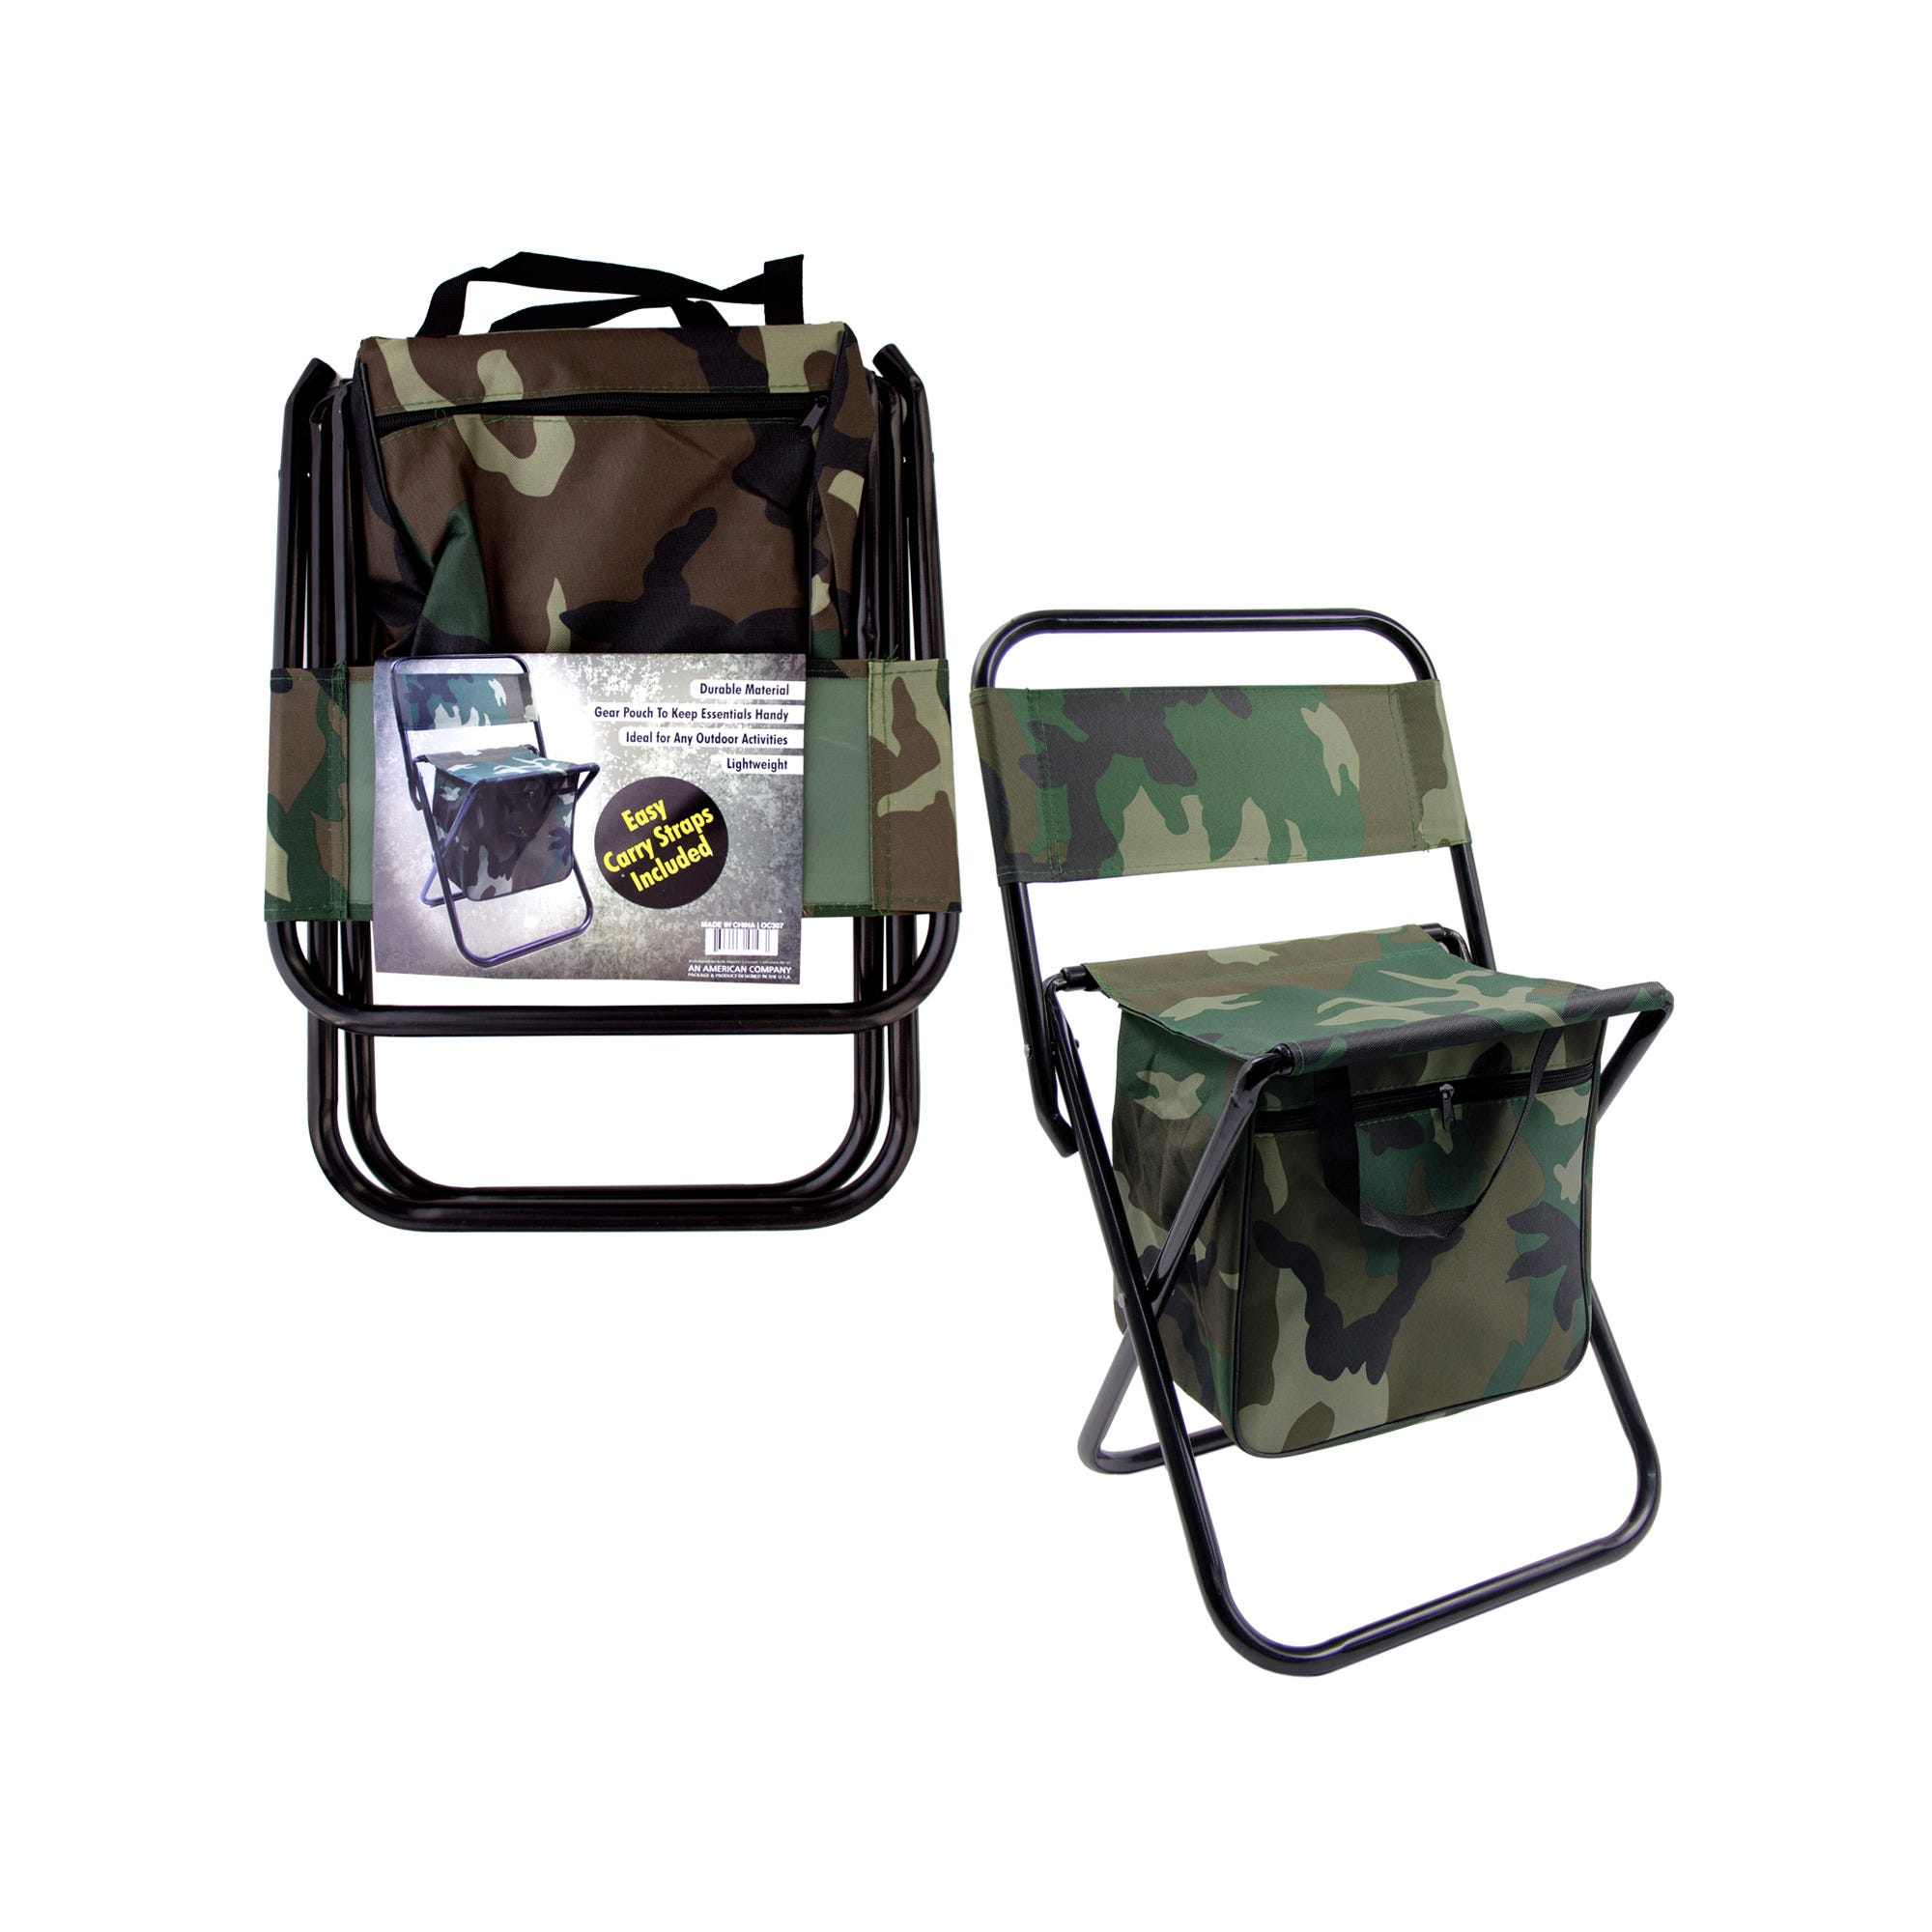 foldable-CHAIR-with-compartments